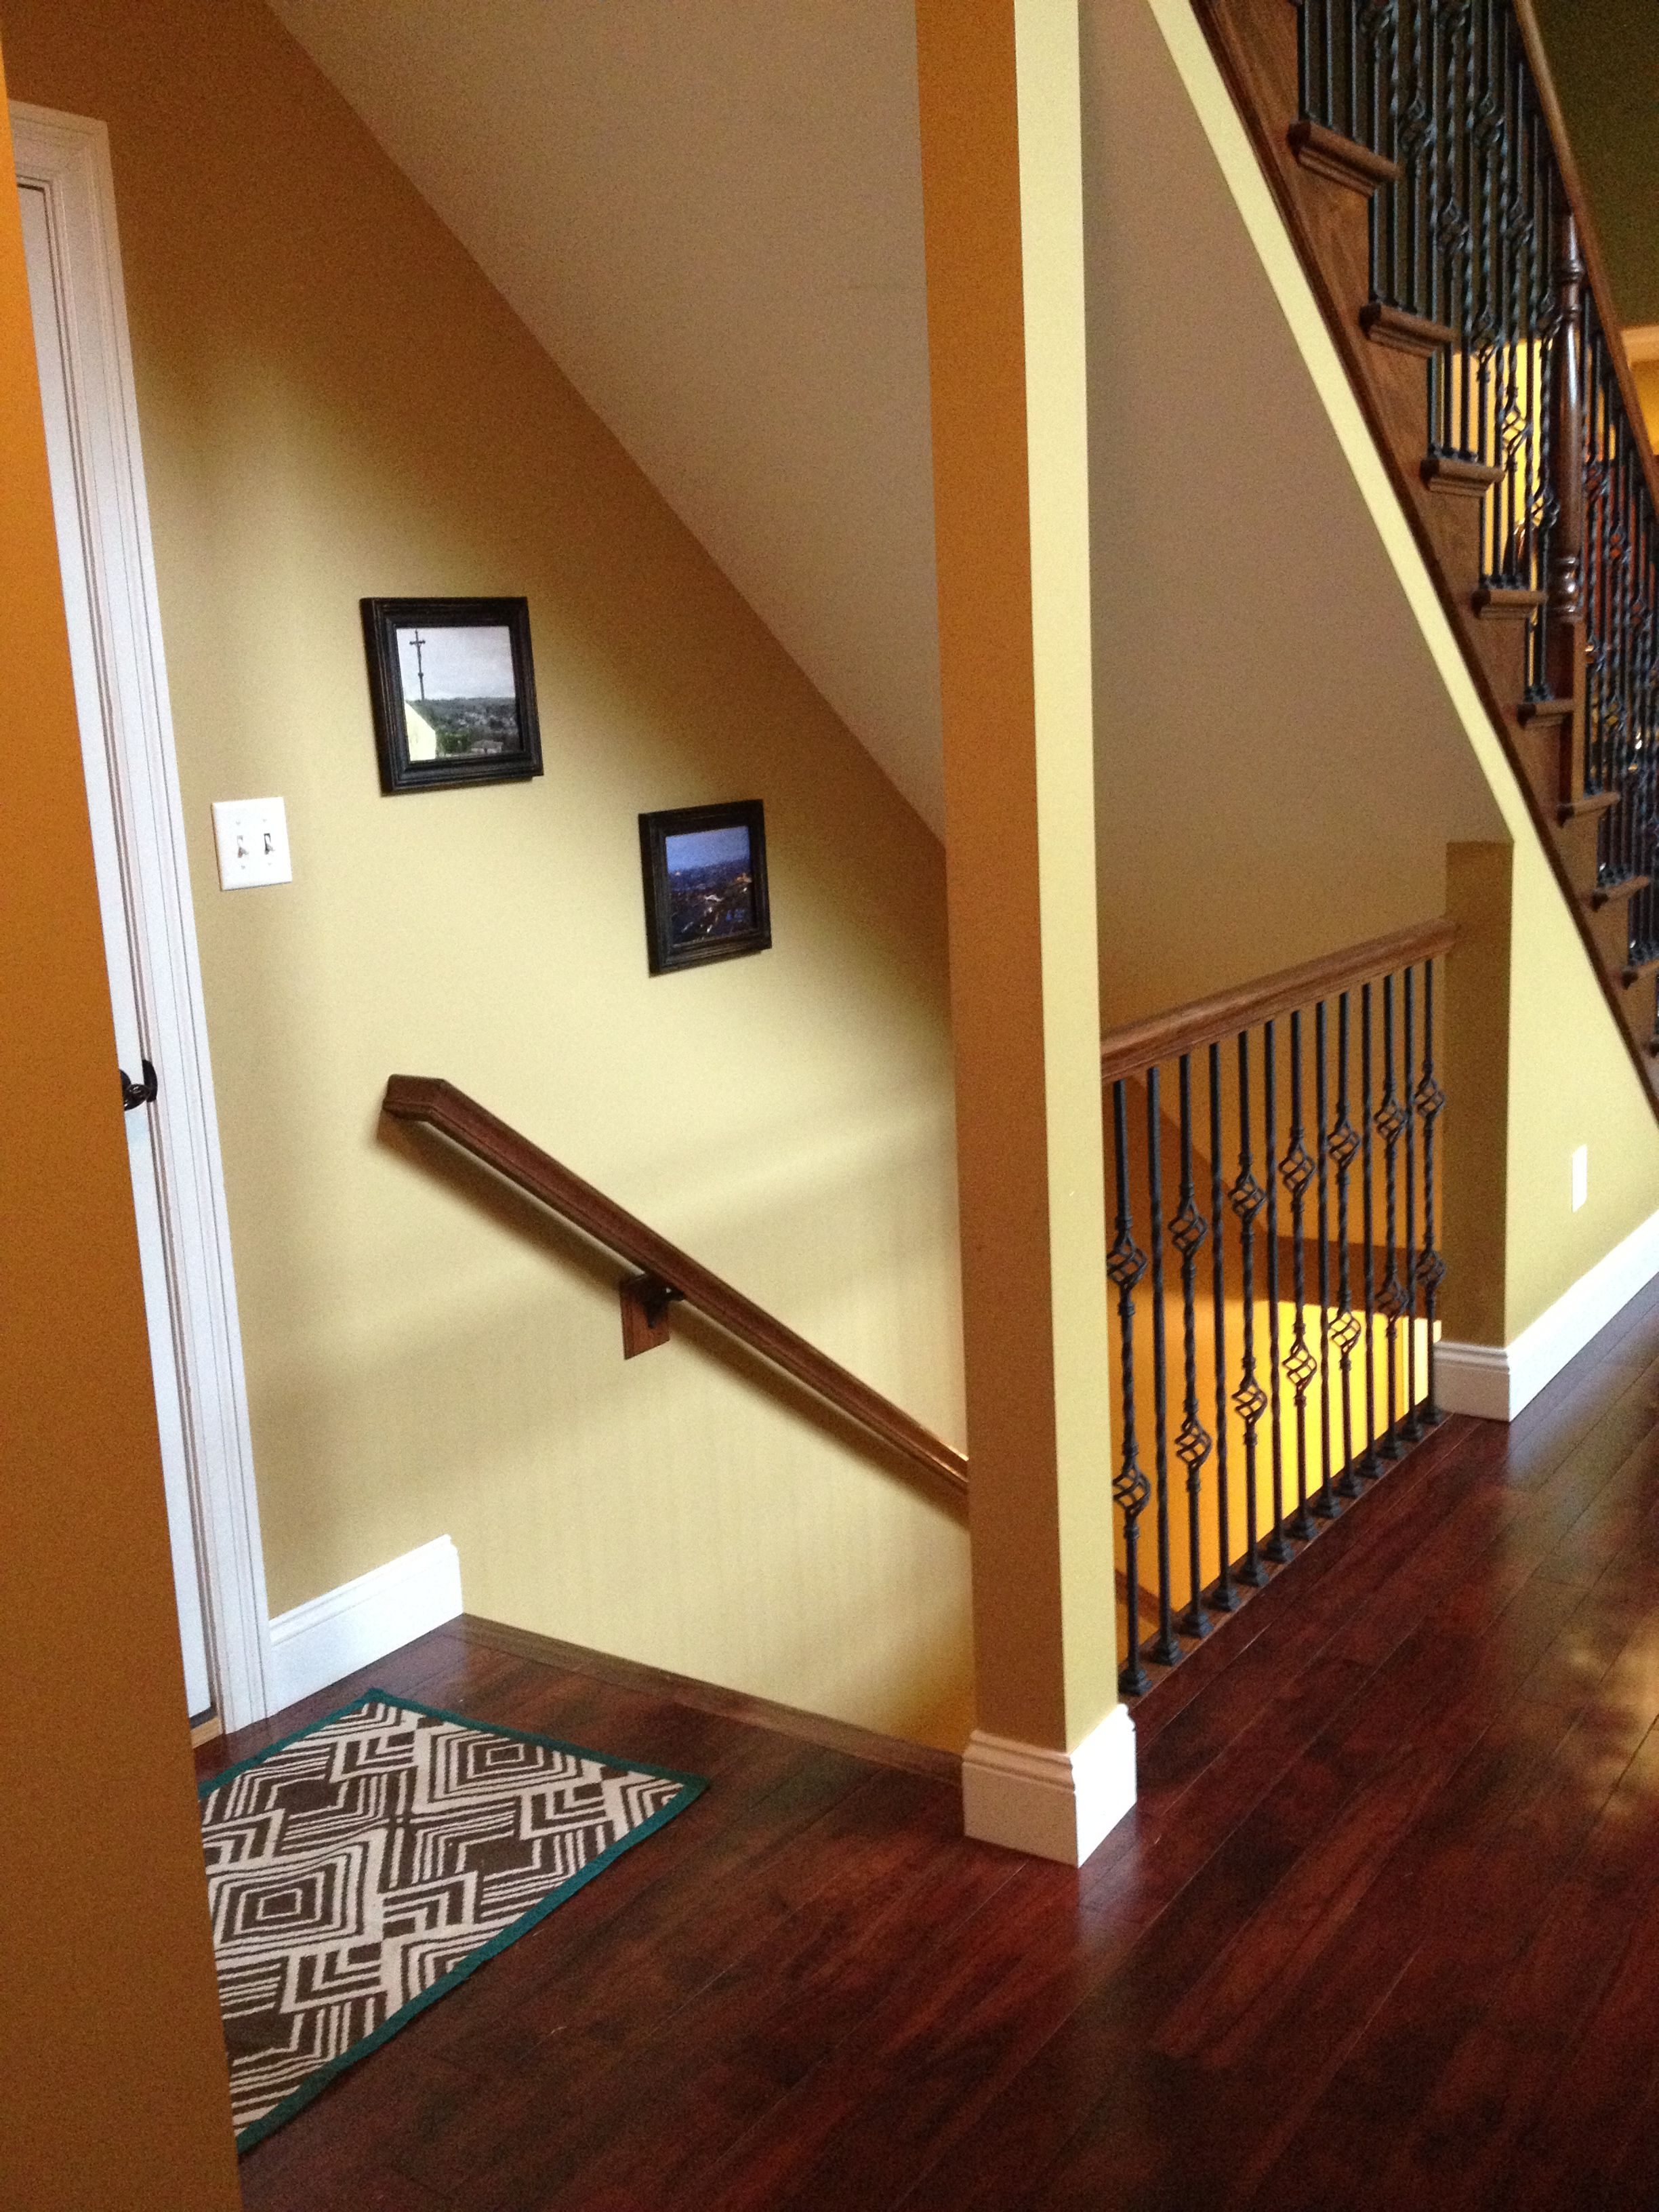 Lighting Basement Washroom Stairs: Exactly What I Want To Do To Open The Stairway To The